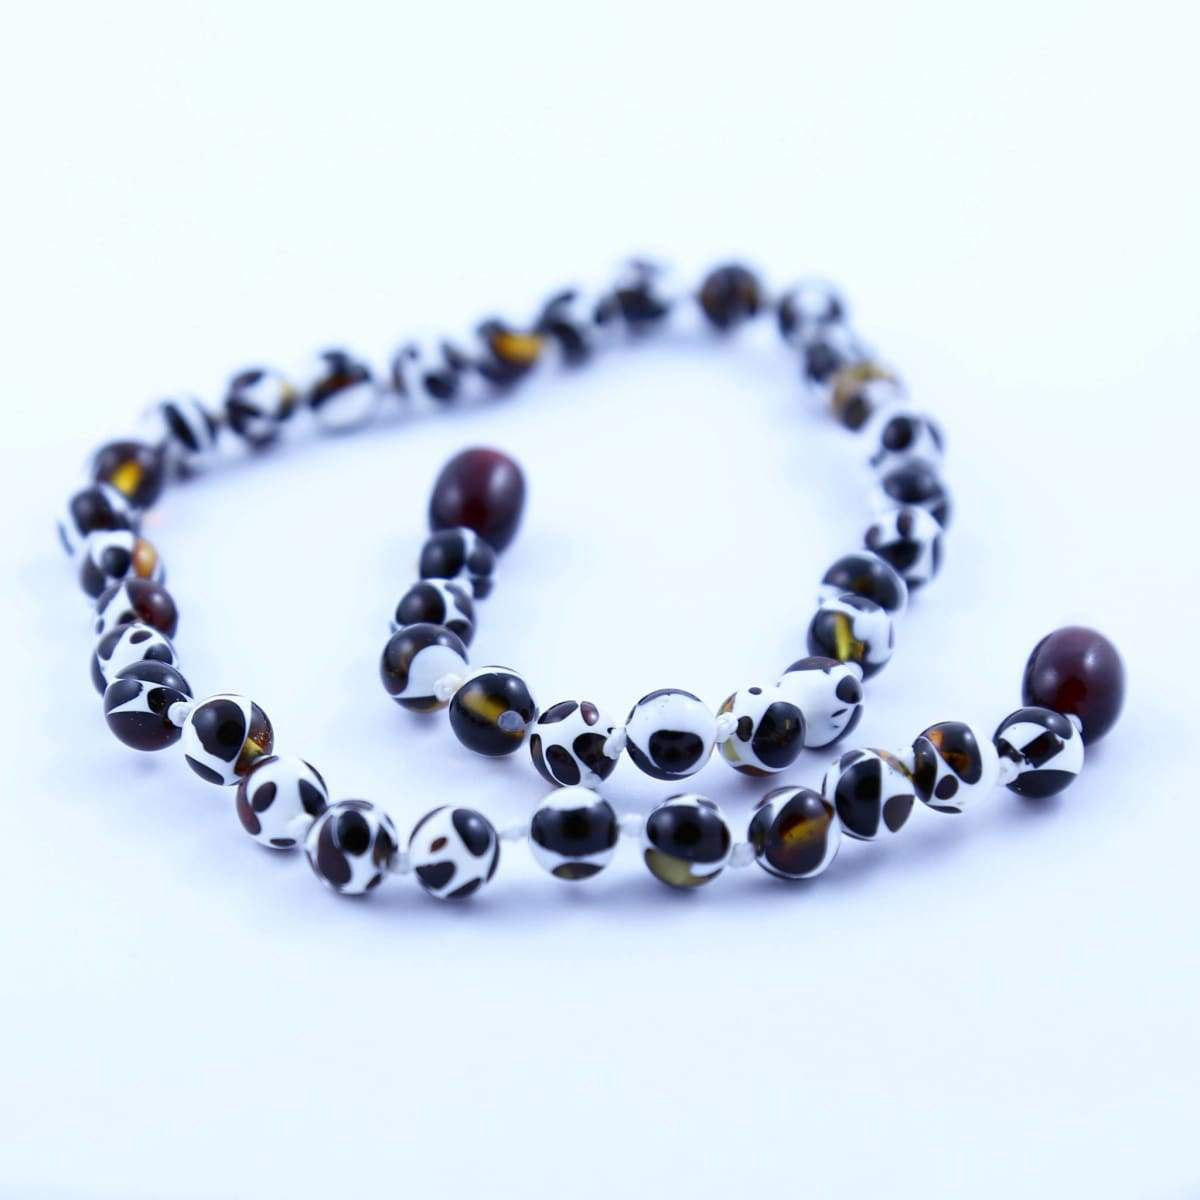 Baltic Amber Mosaic - 14 Necklace - Twist Clasp - Baltic Amber Jewelry